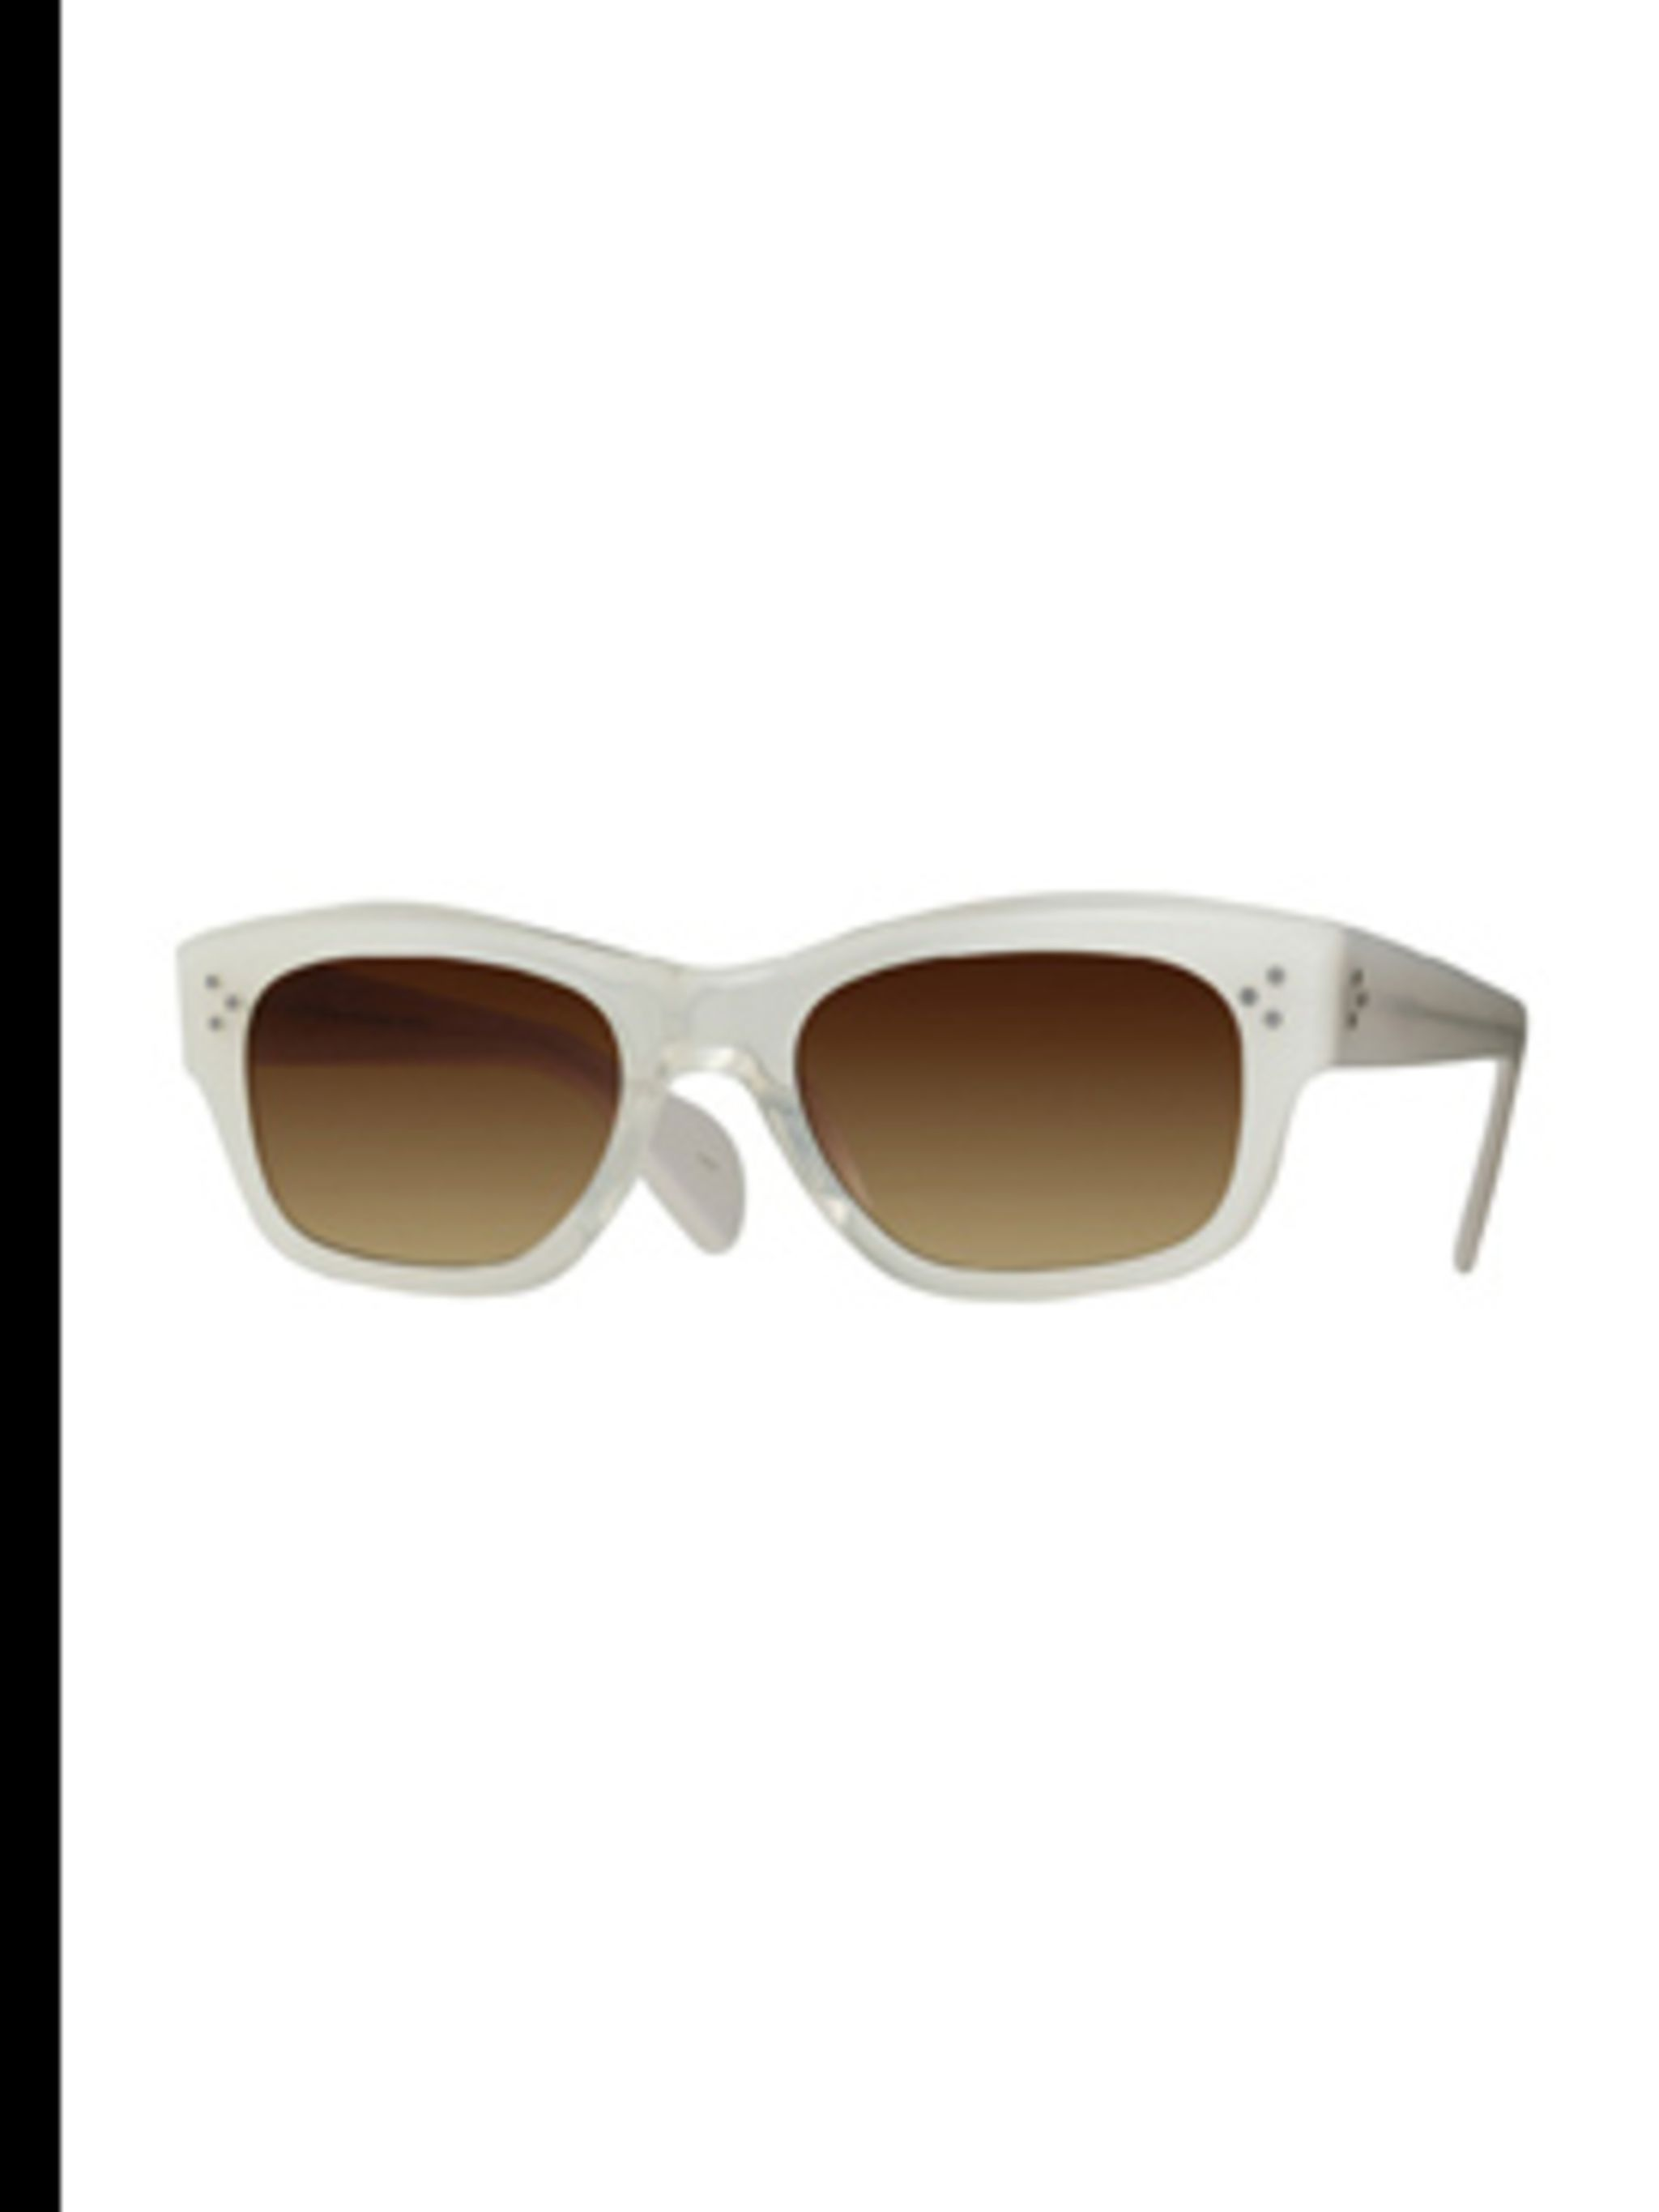 <p>Sunglasses, £150- available on request from David Clulow. For stockists call 0207 486 1485</p>